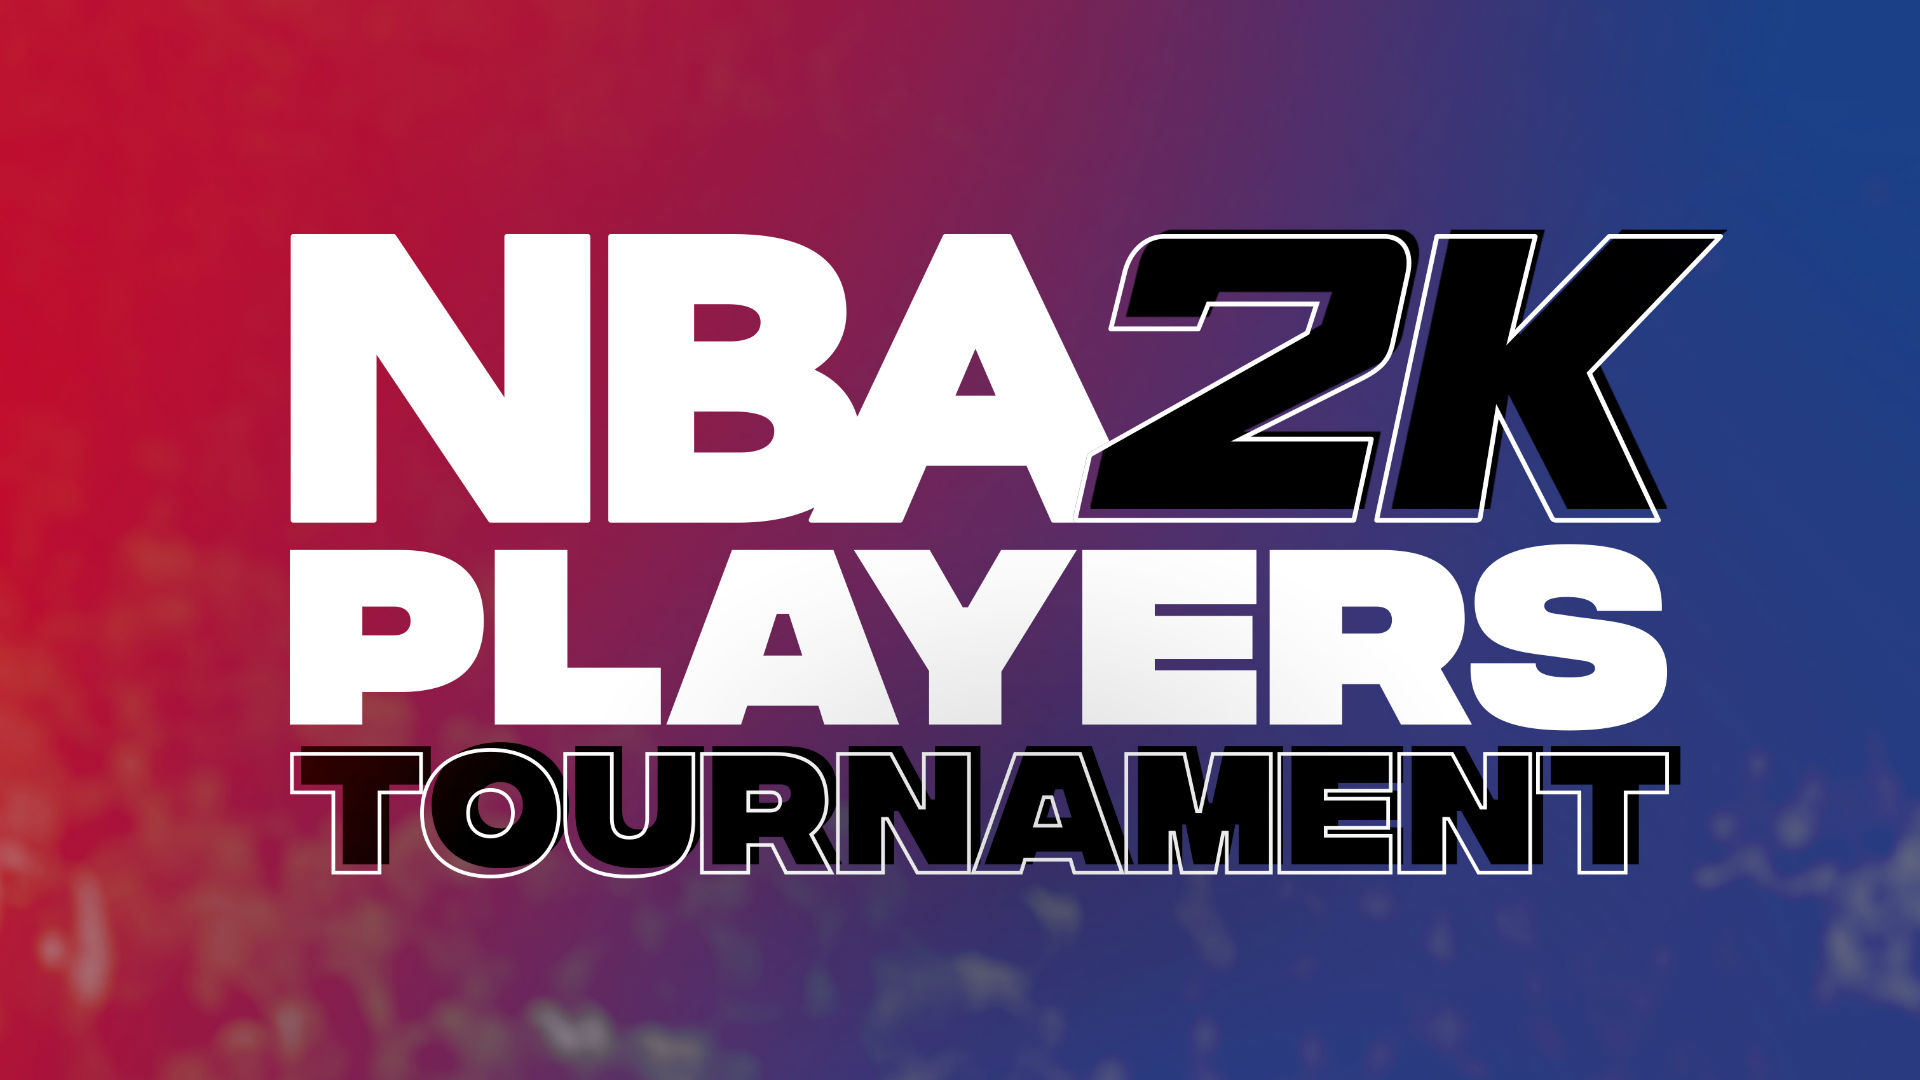 'NBA 2K' Players Tournament 2020: calendario completo de TV, soporte y lista de entradas para juegos en ESPN 28